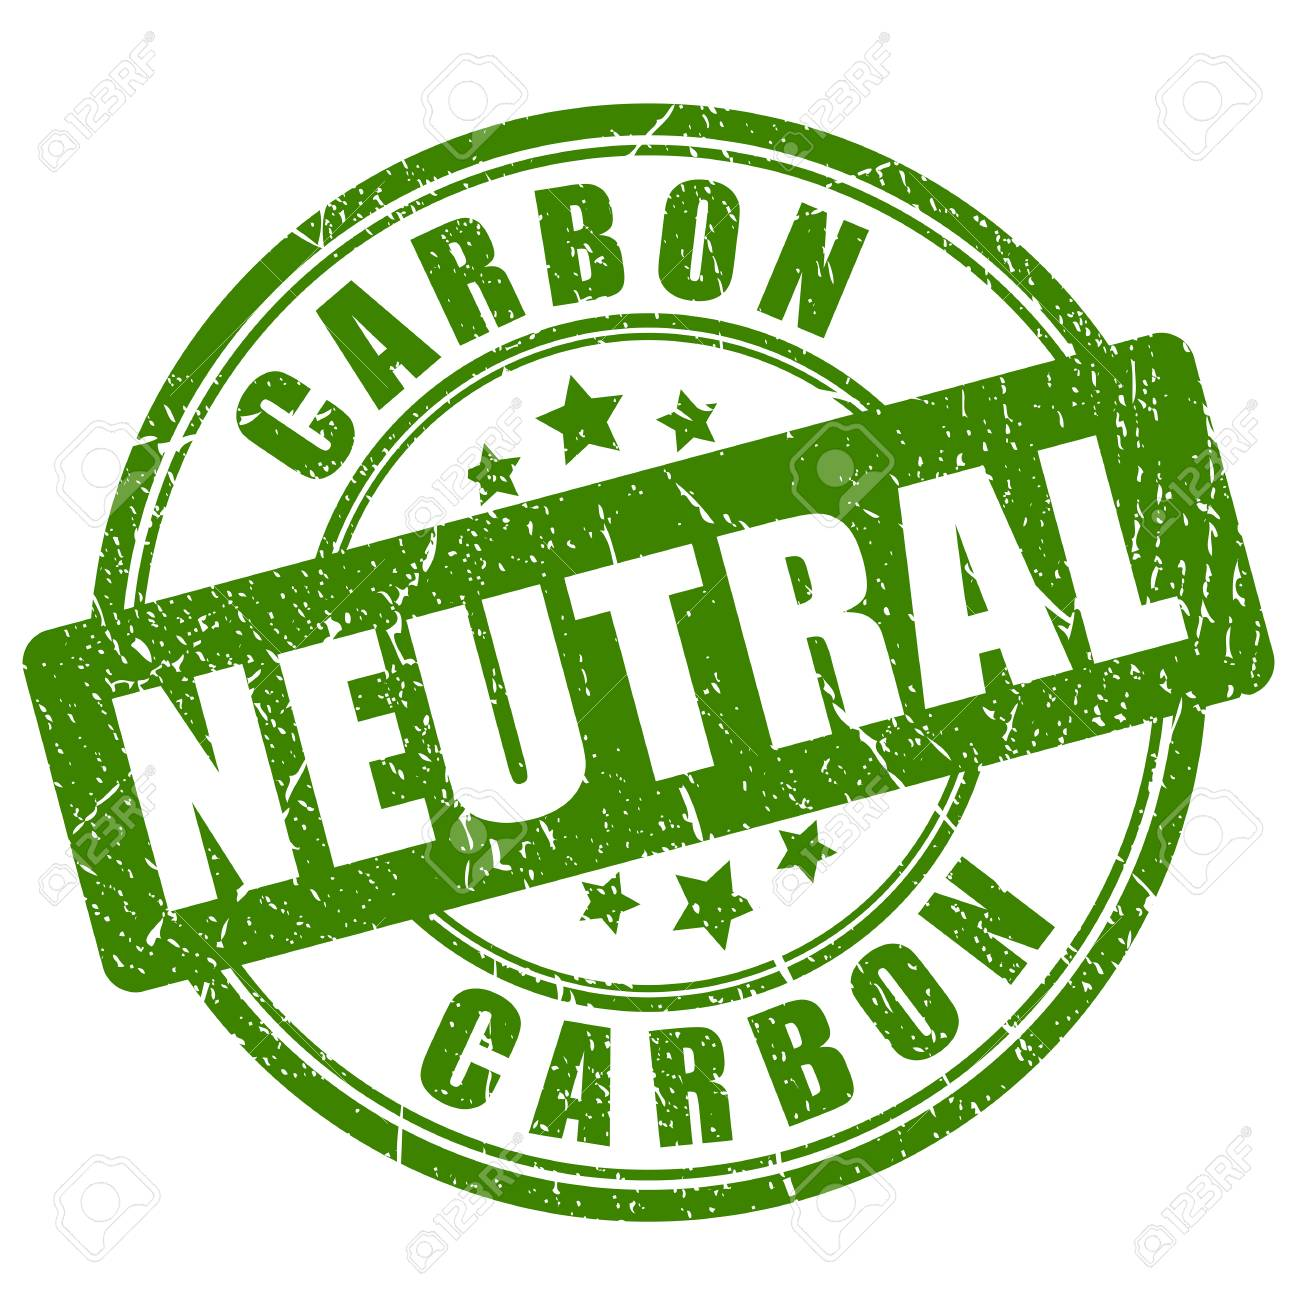 Carbon neutral green stamp - 114352488